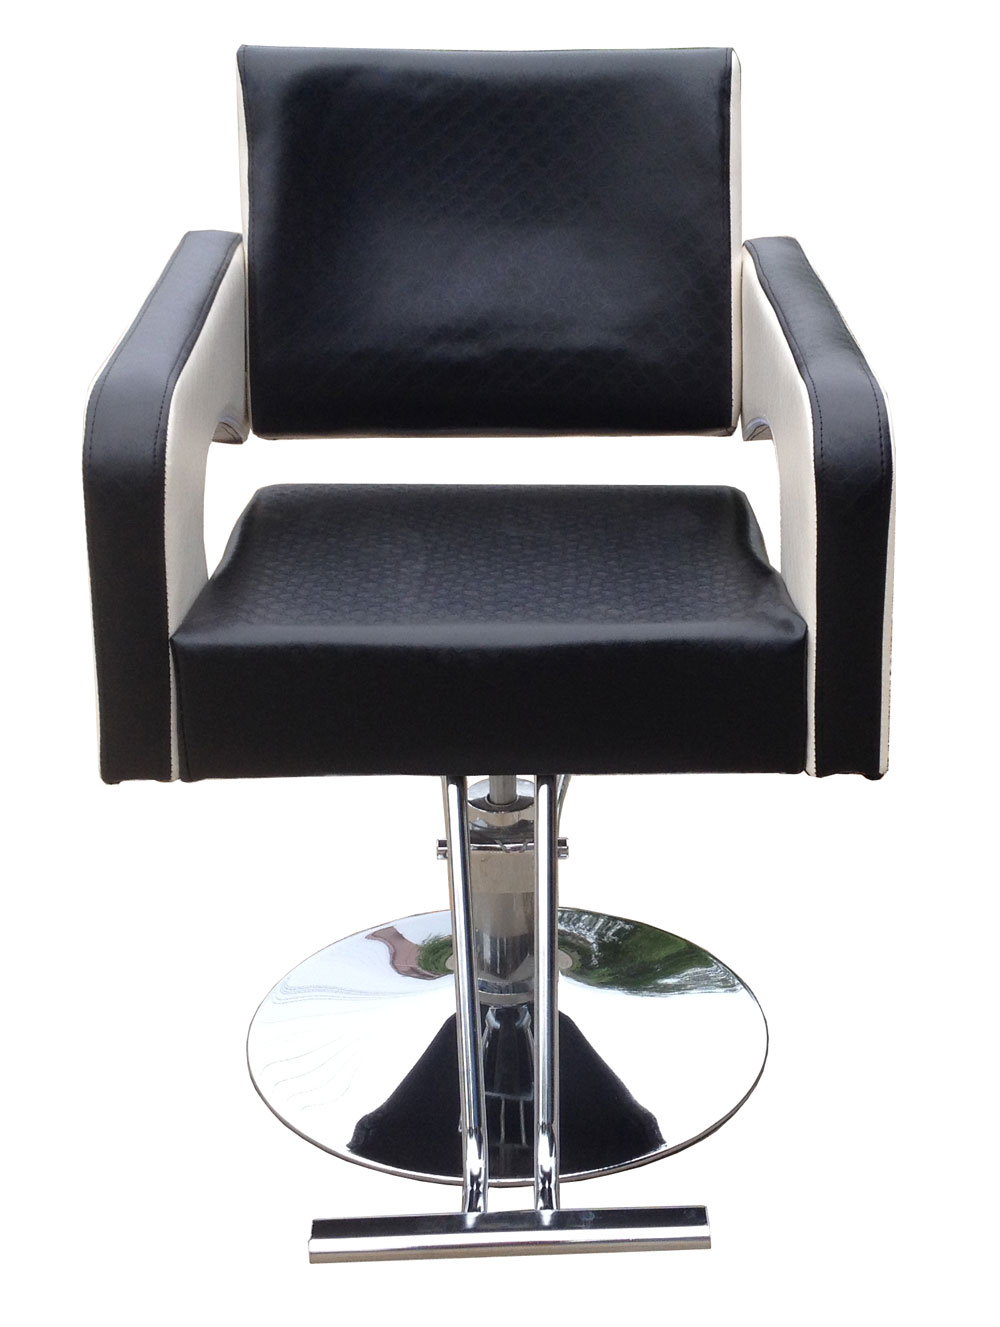 4106 Beauty Bed T Swivel Chair Can Put Down Can Lift Hairdressing Chair Barber Chair The Haircut Chair